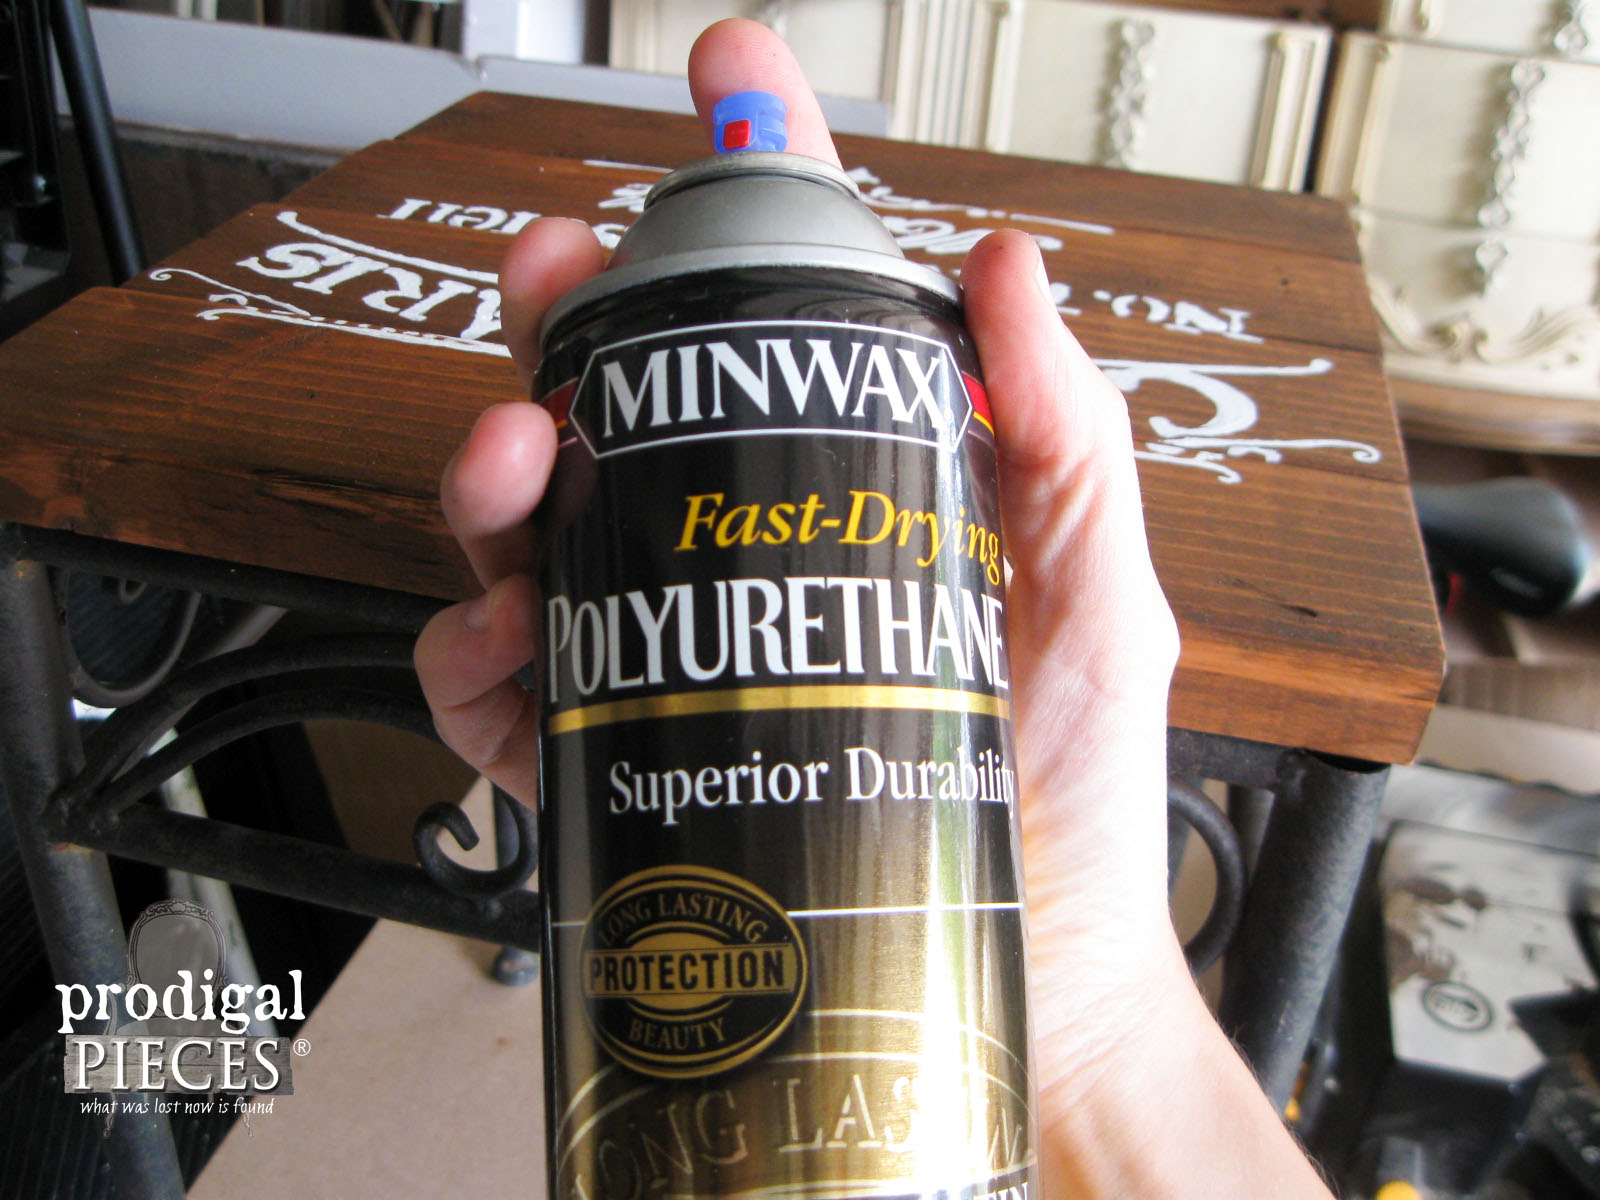 Spray Polyurethane by Minwax for Table | Prodigal Pieces | www.prodigalpieces.com